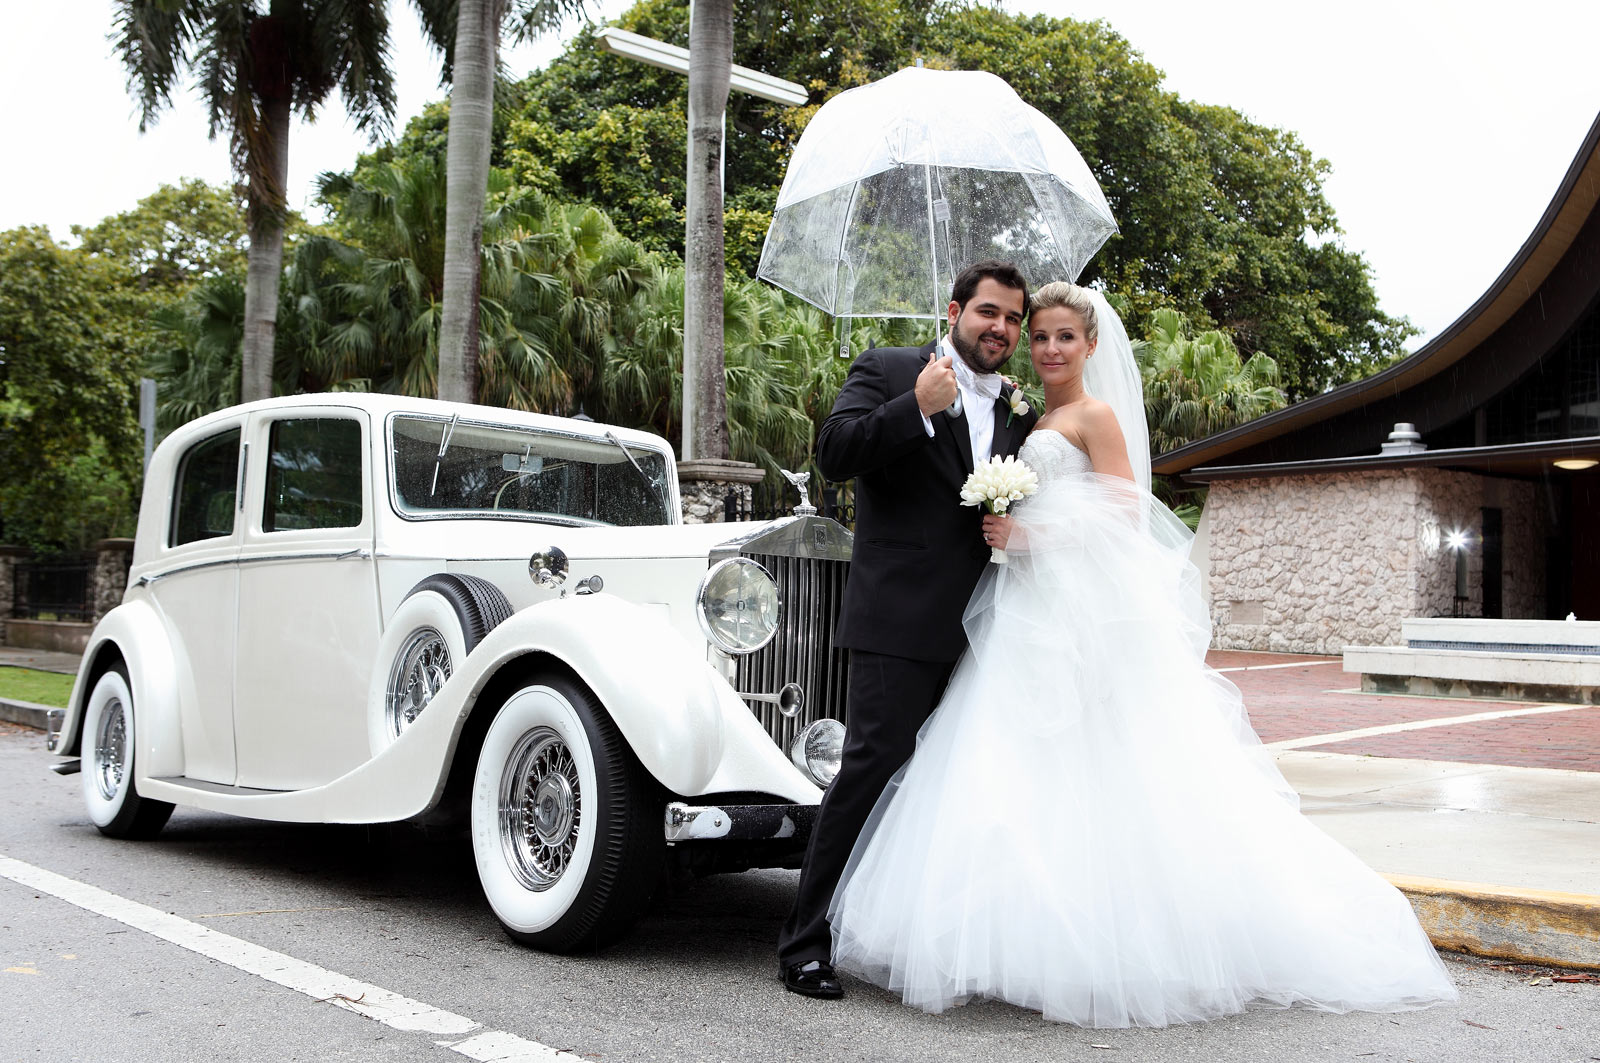 Happy Wedding Couple Under the Rain - Classic Car